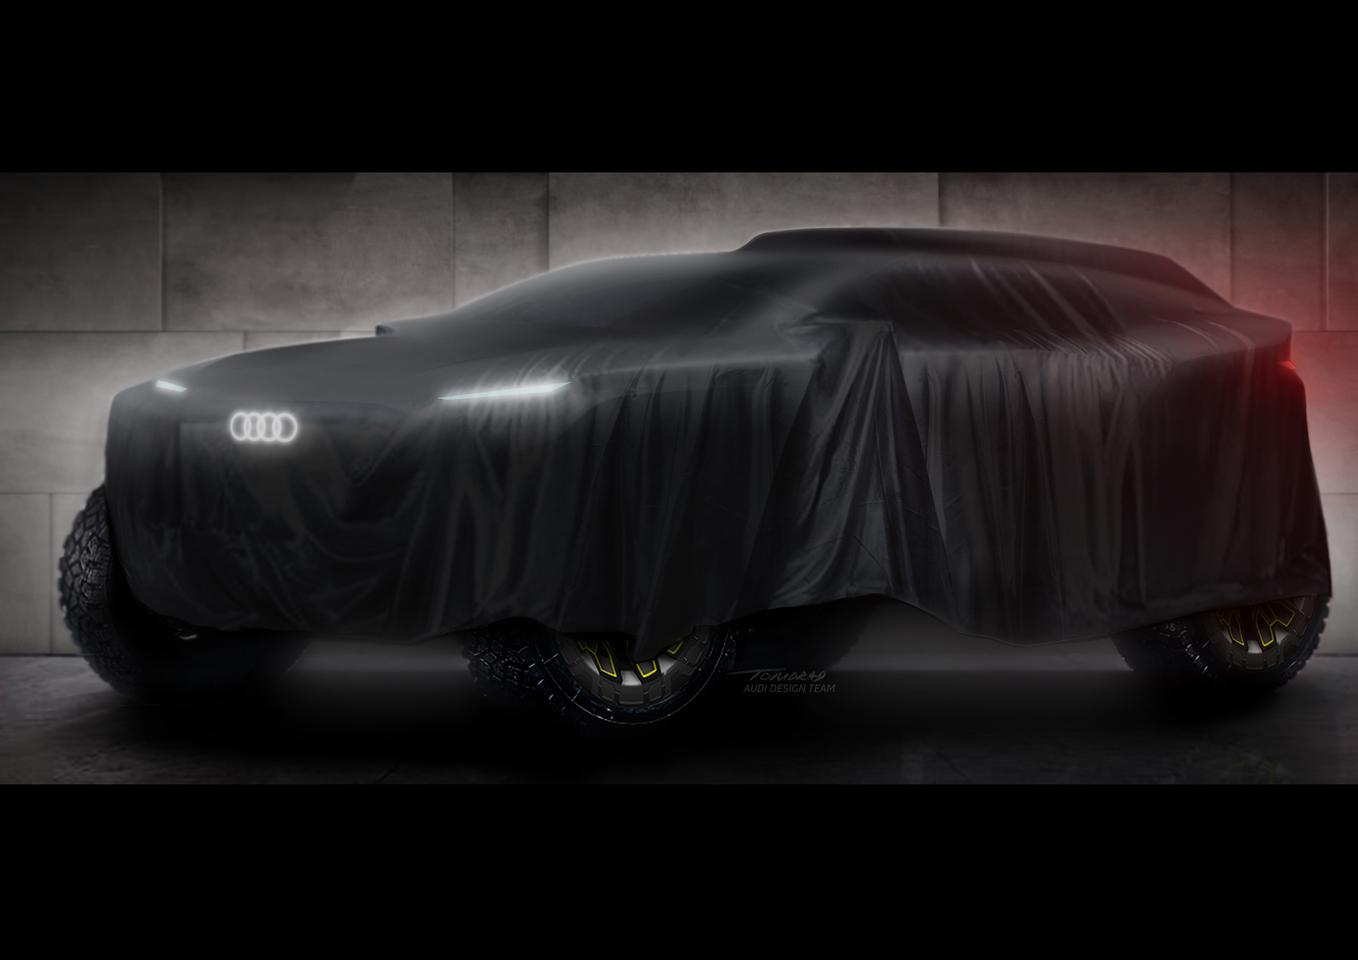 Audi teases its hybrid rally car ahead of its first Dakar appearance